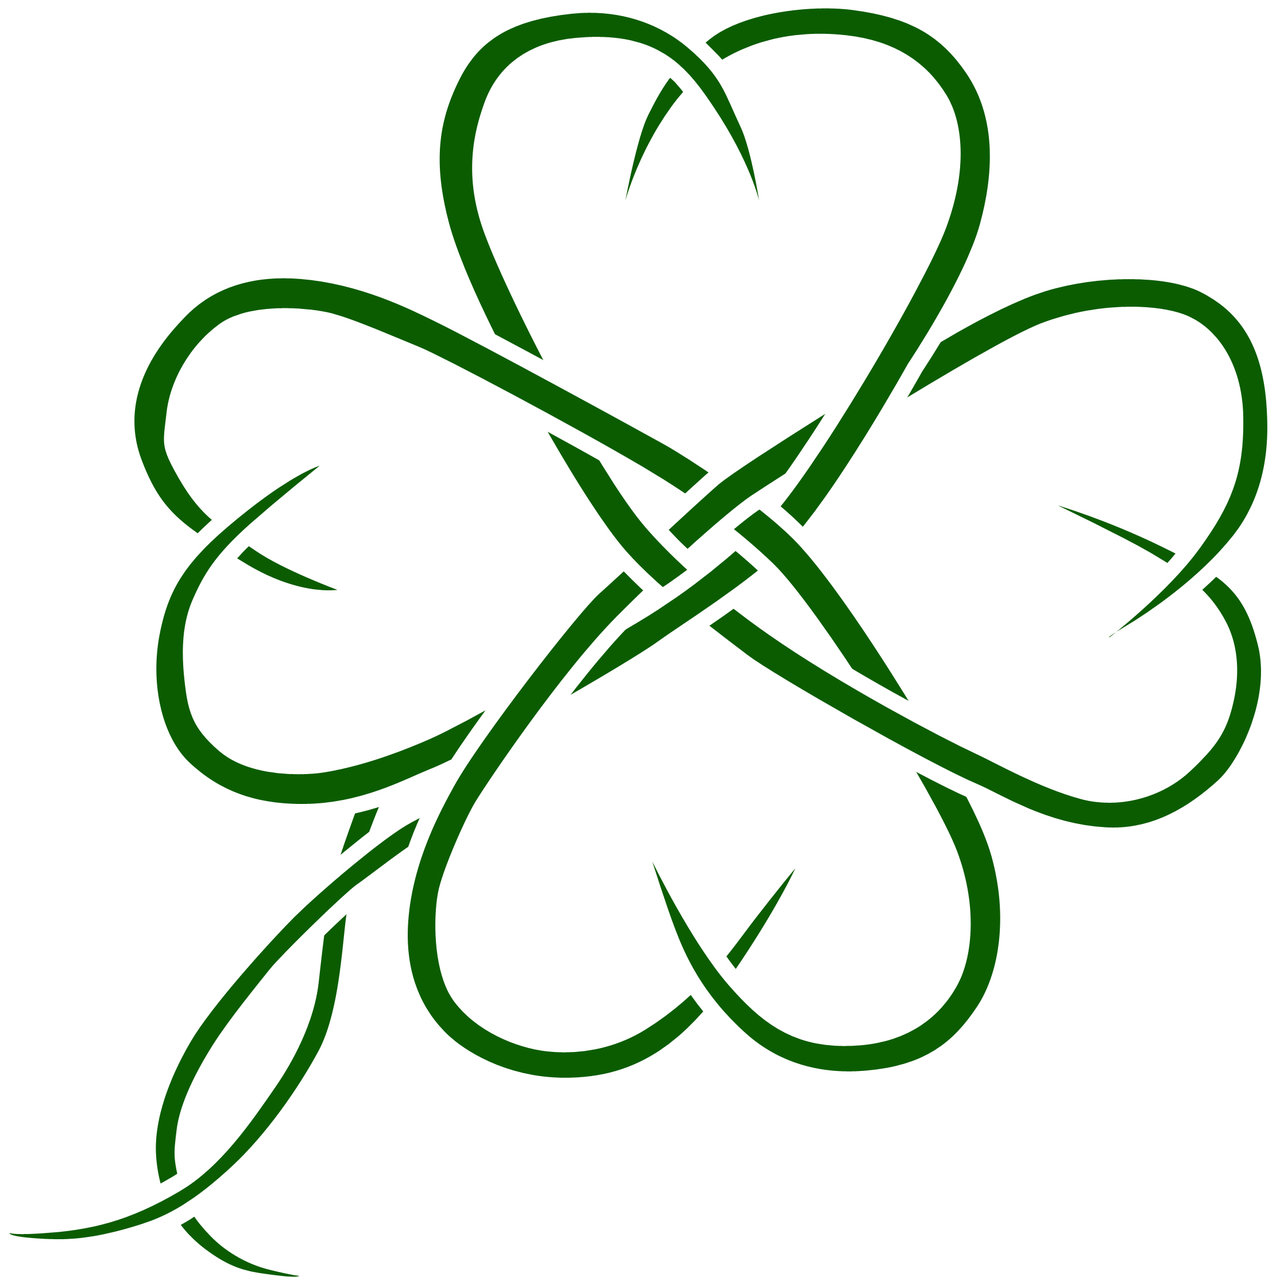 4 leaf clover four leaf clover art clipart